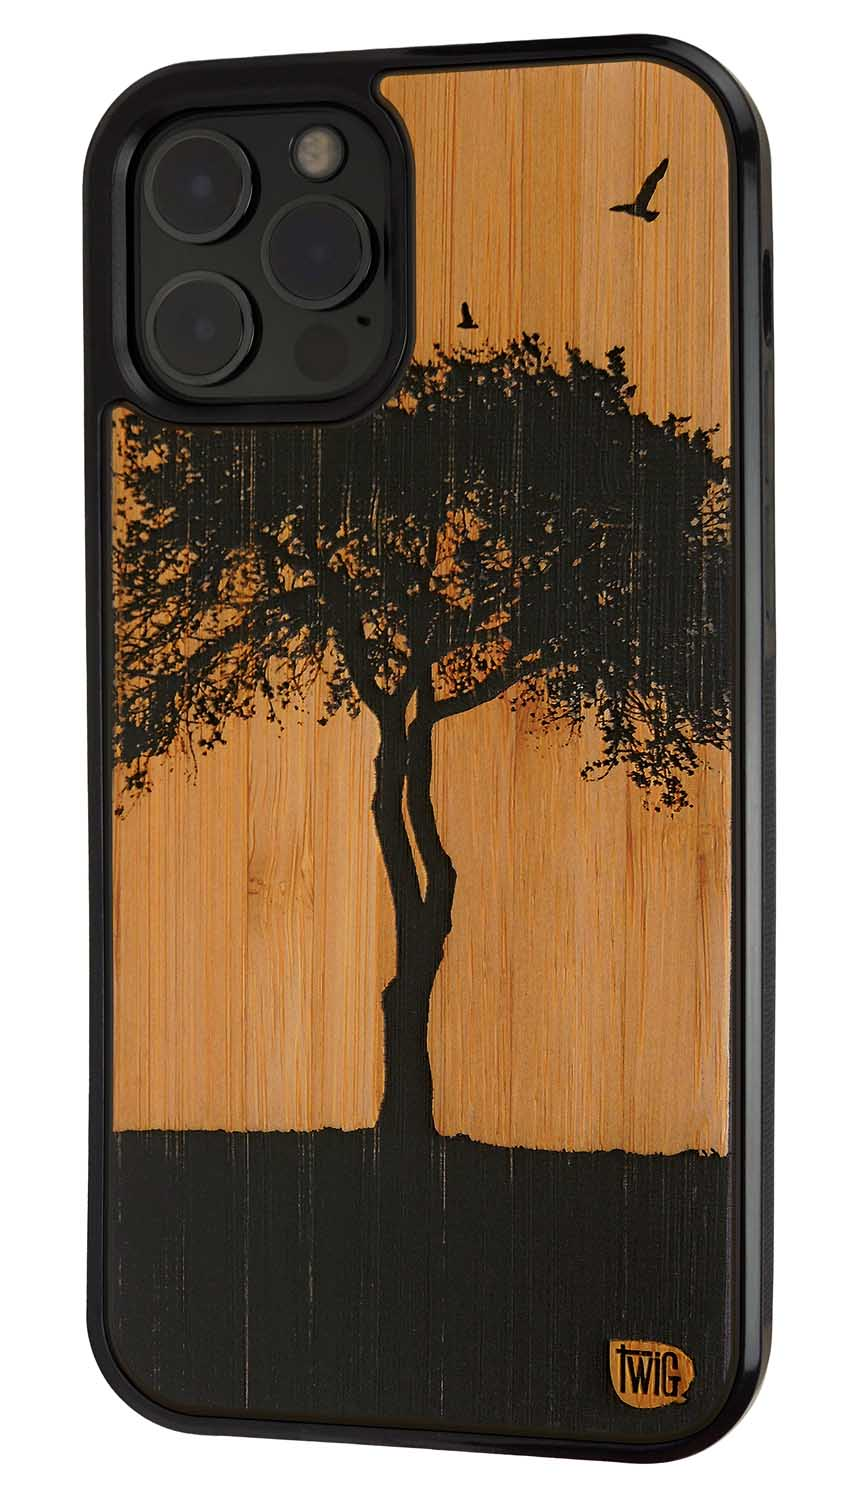 The One Tree - Case for iPhone 12/Mini/Pro/Max, Case for iPhone 12/Mini/Pro/Max - Twig Case Co.